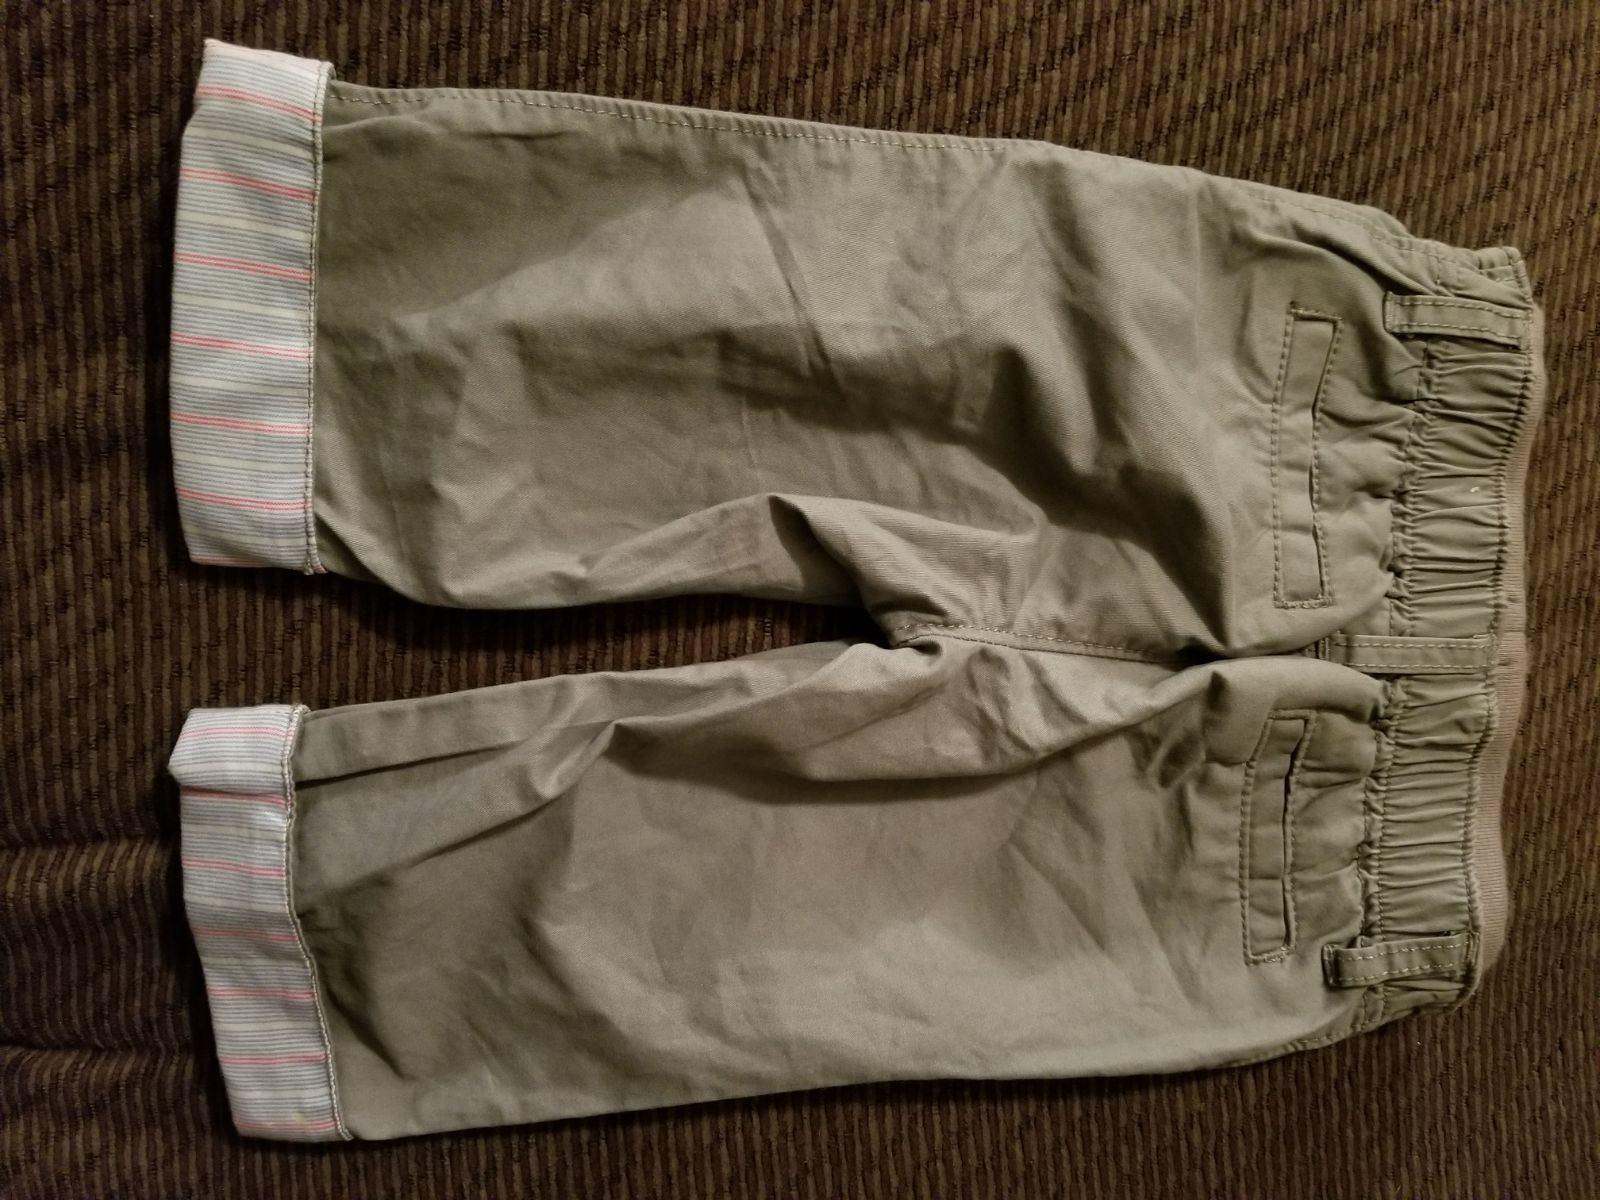 Baby Gap Infant lined pants 6-12 Months